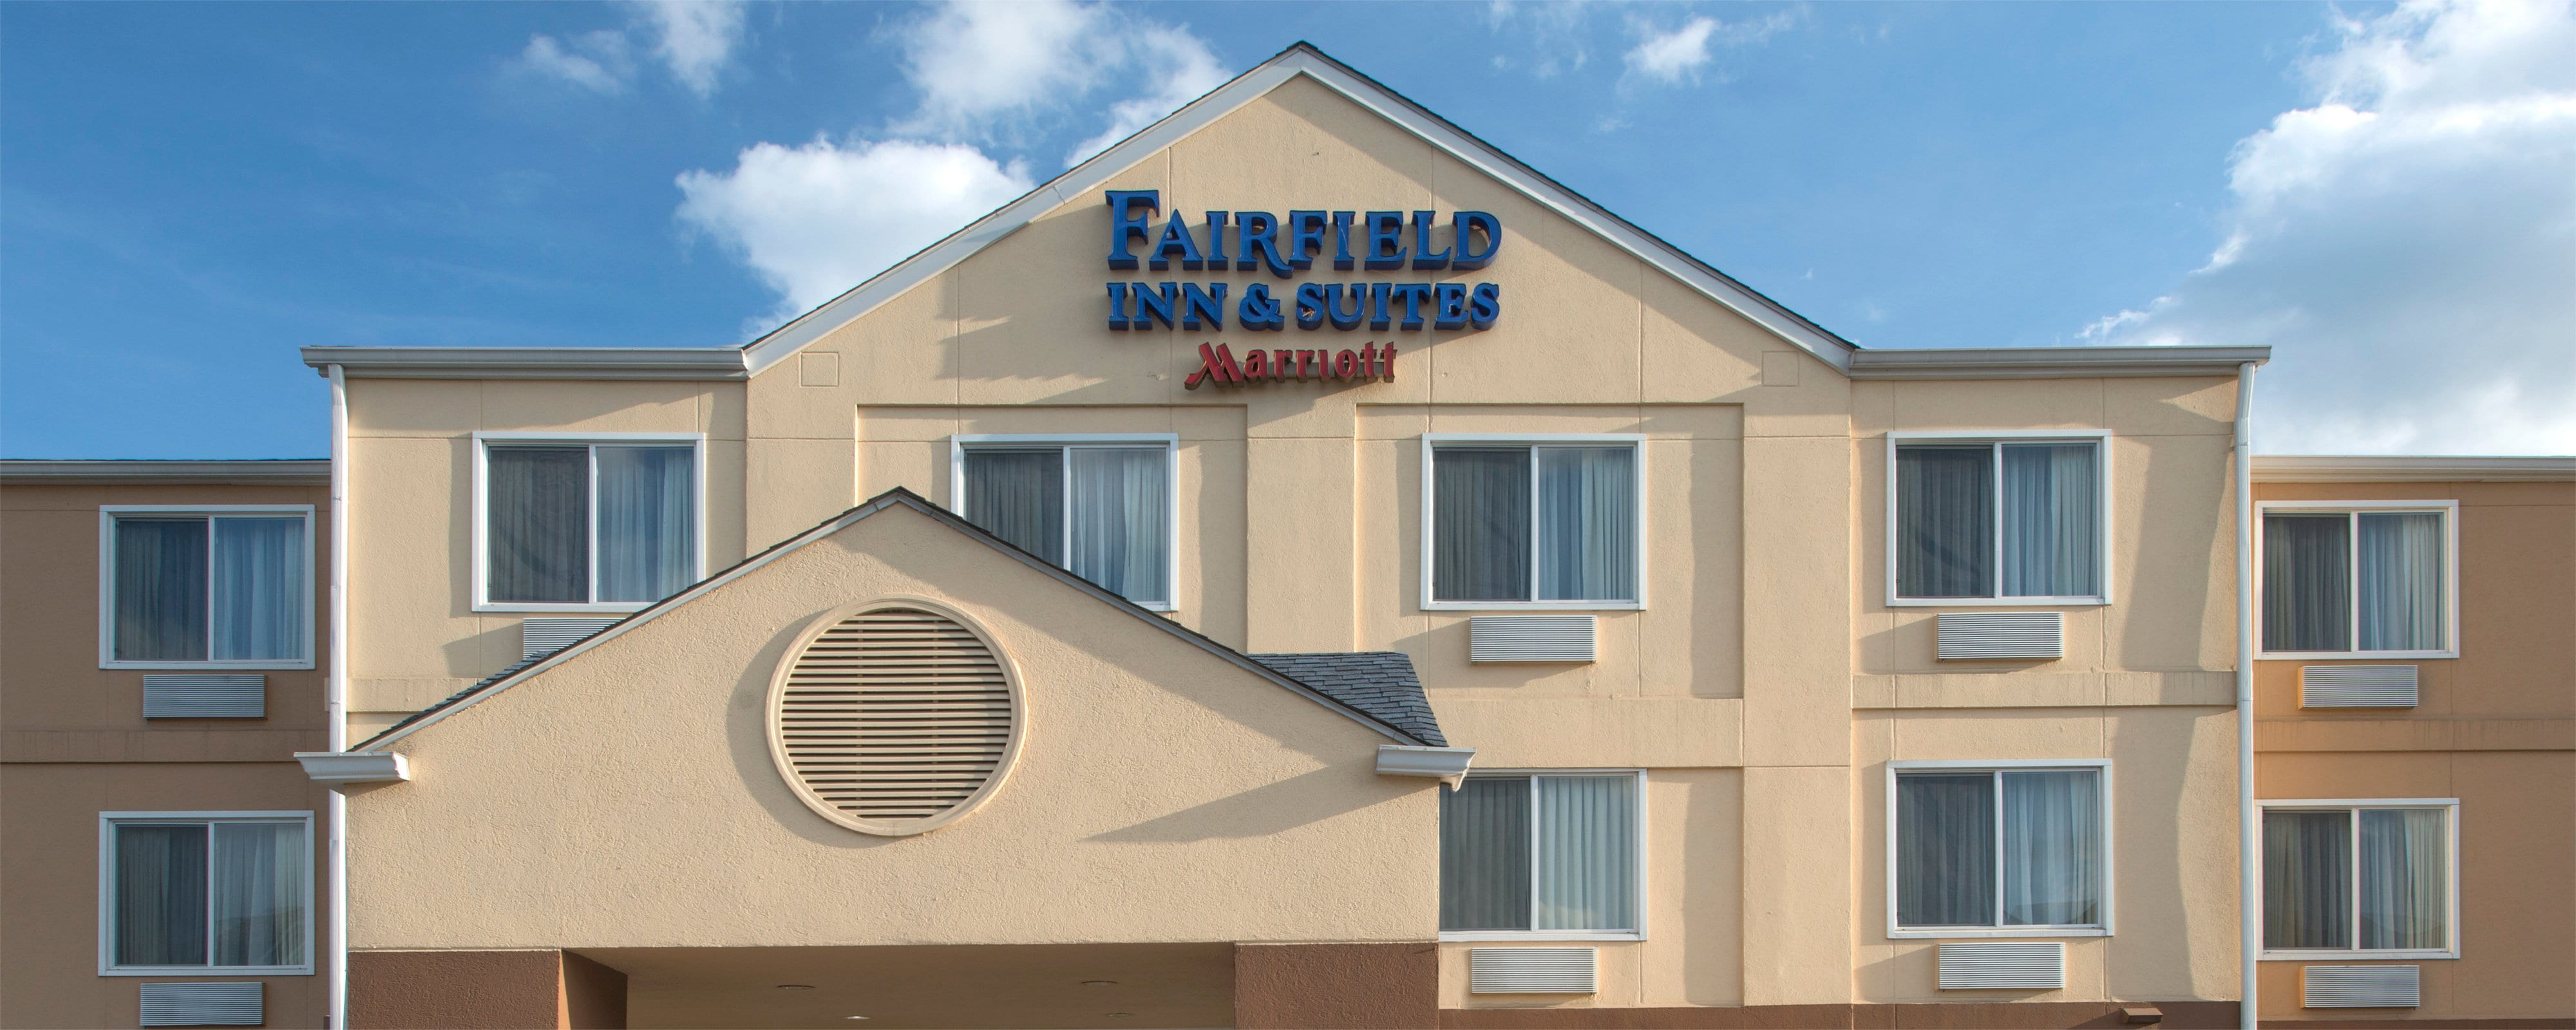 Fairfield Inn and Suites Indianapolis